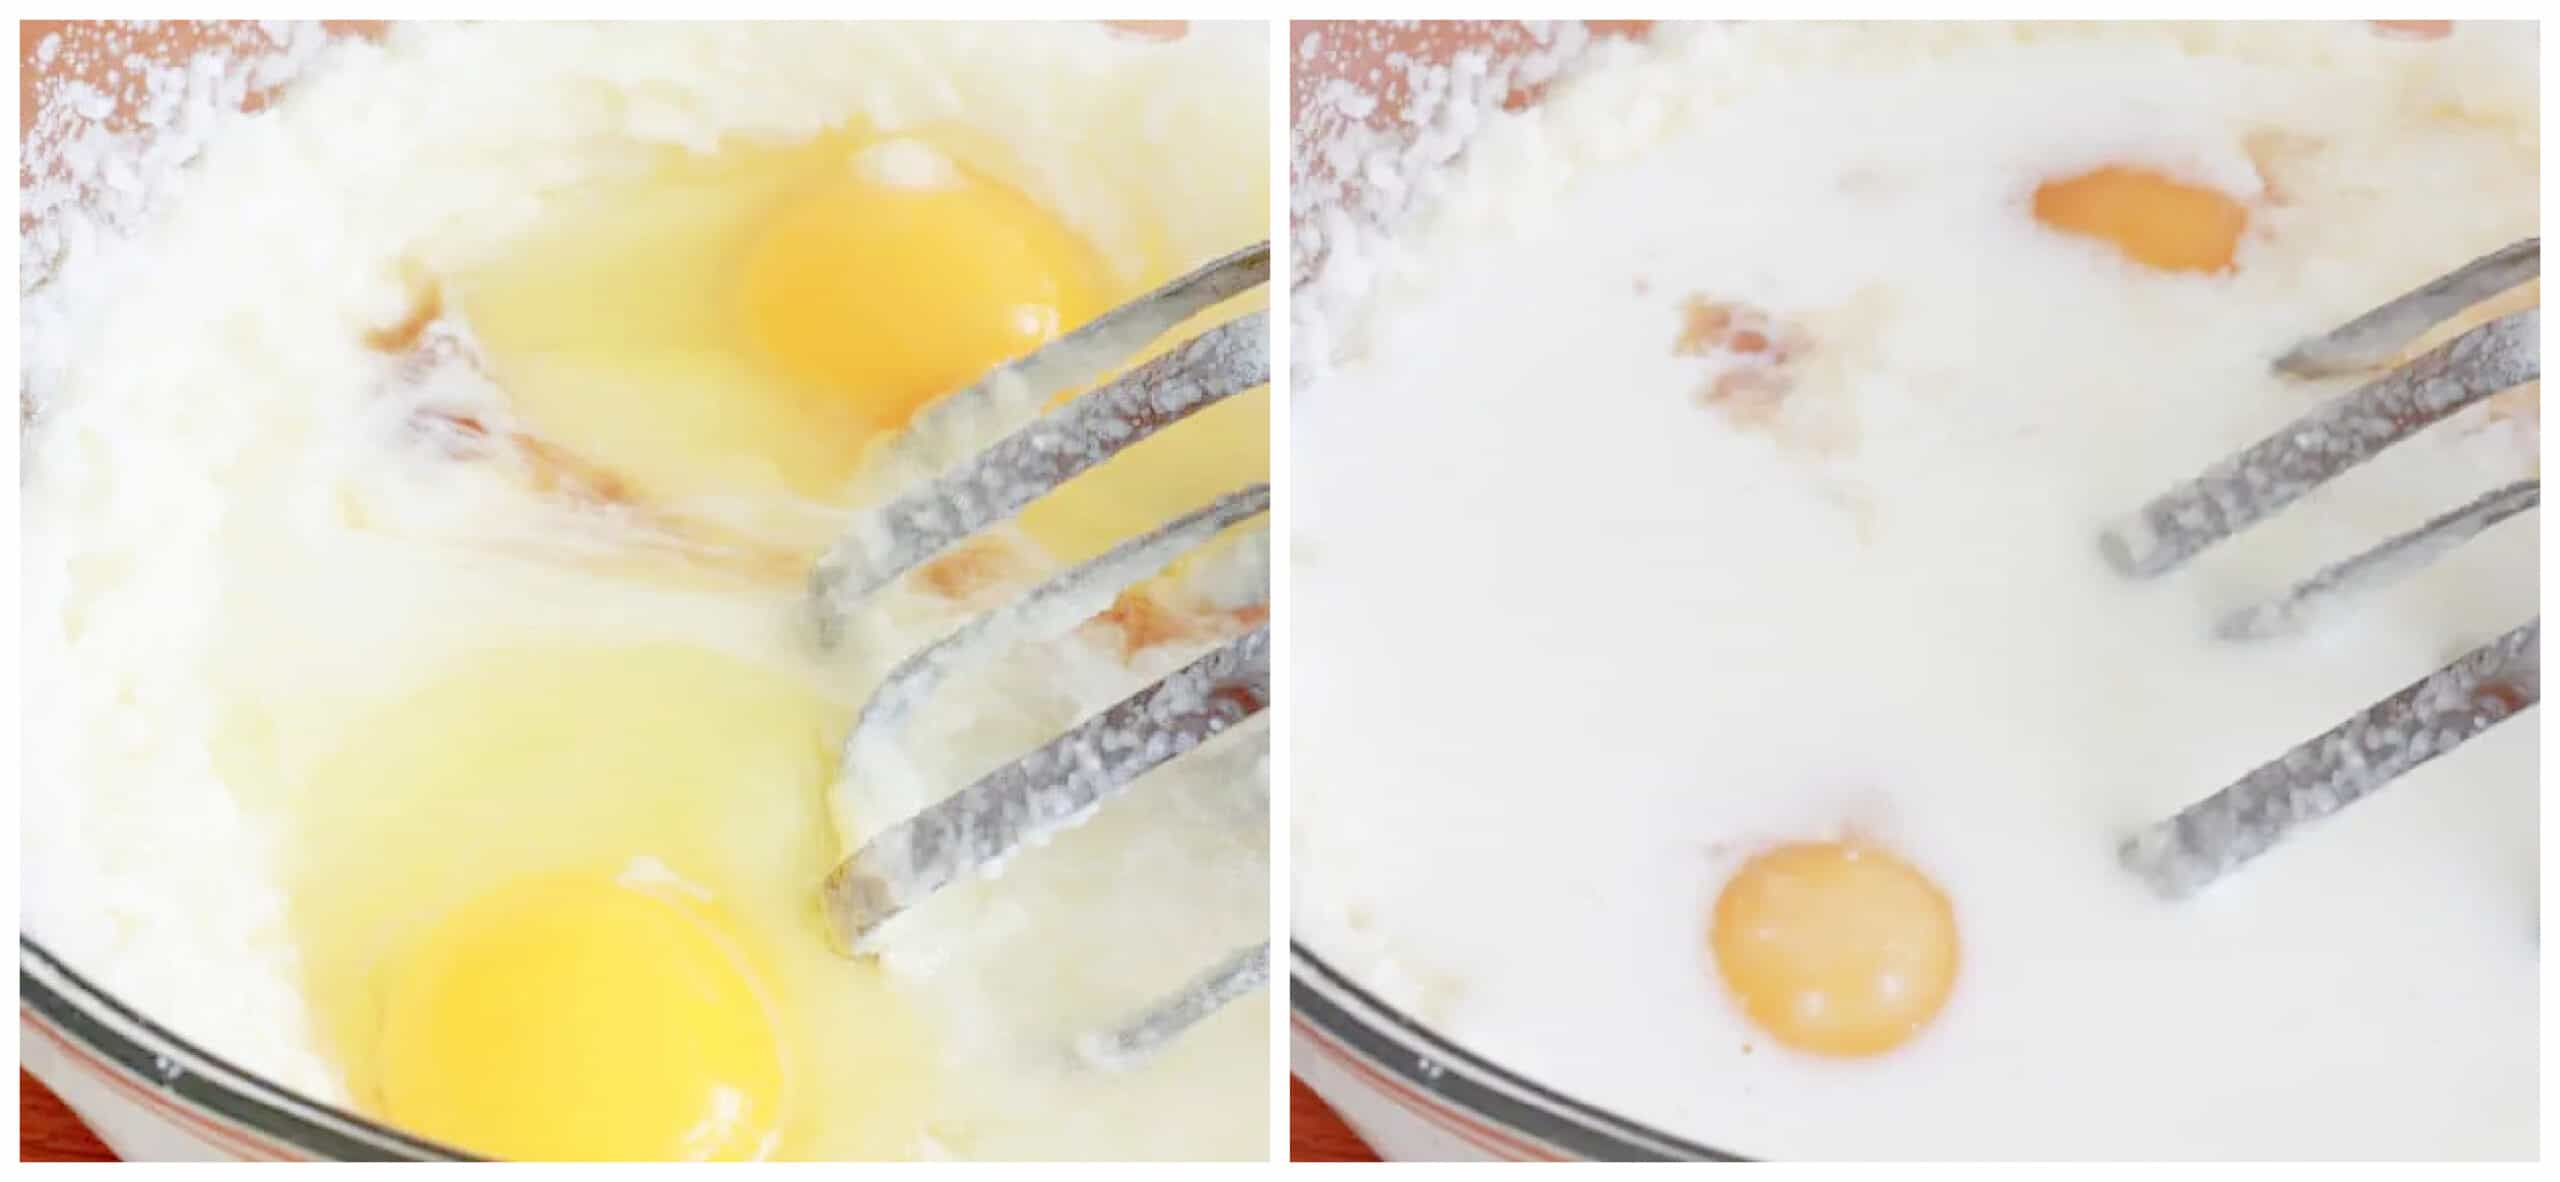 beating eggs and buttermilk into batter